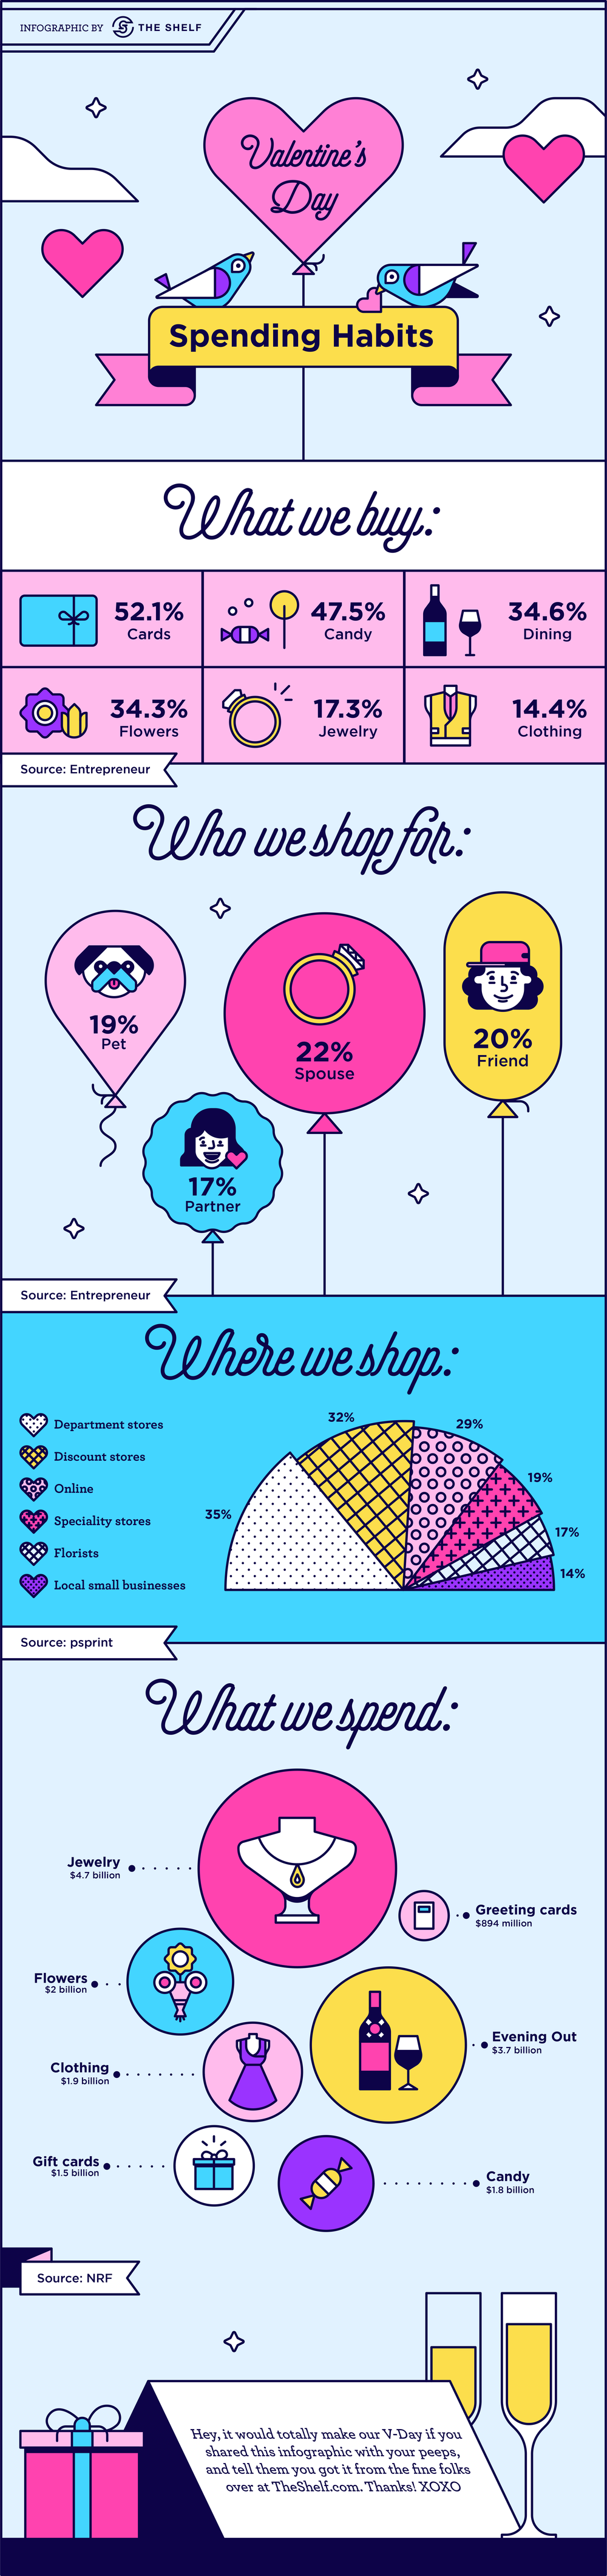 ASAP - Flippin-Sweet Examples of Valentine's Day Marketing Campaigns_2.png